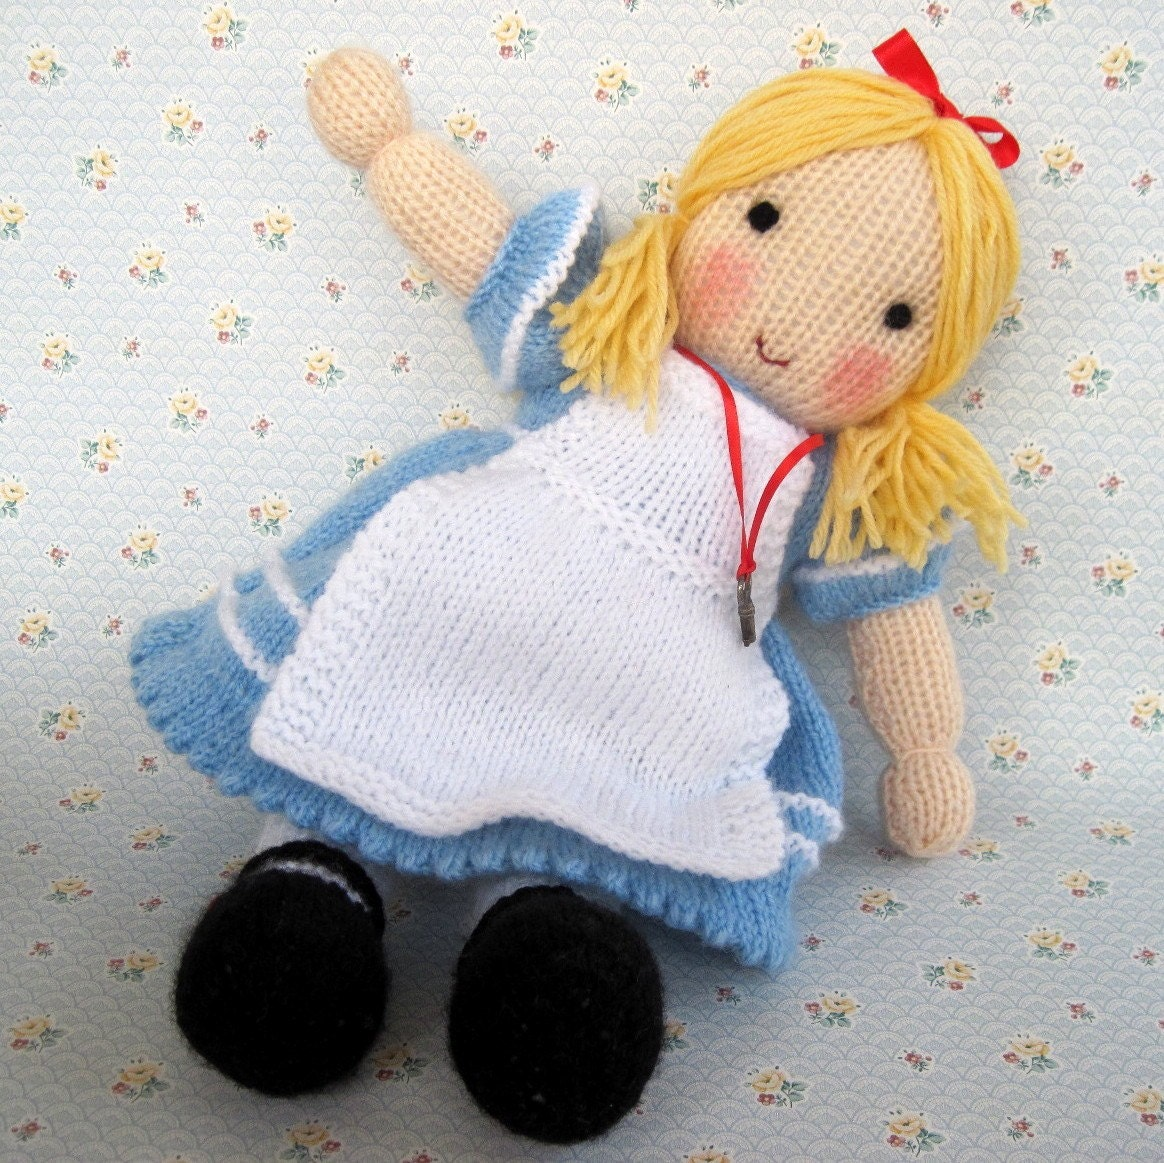 ALICE in Wonderland knitted toy doll PDF email knitting